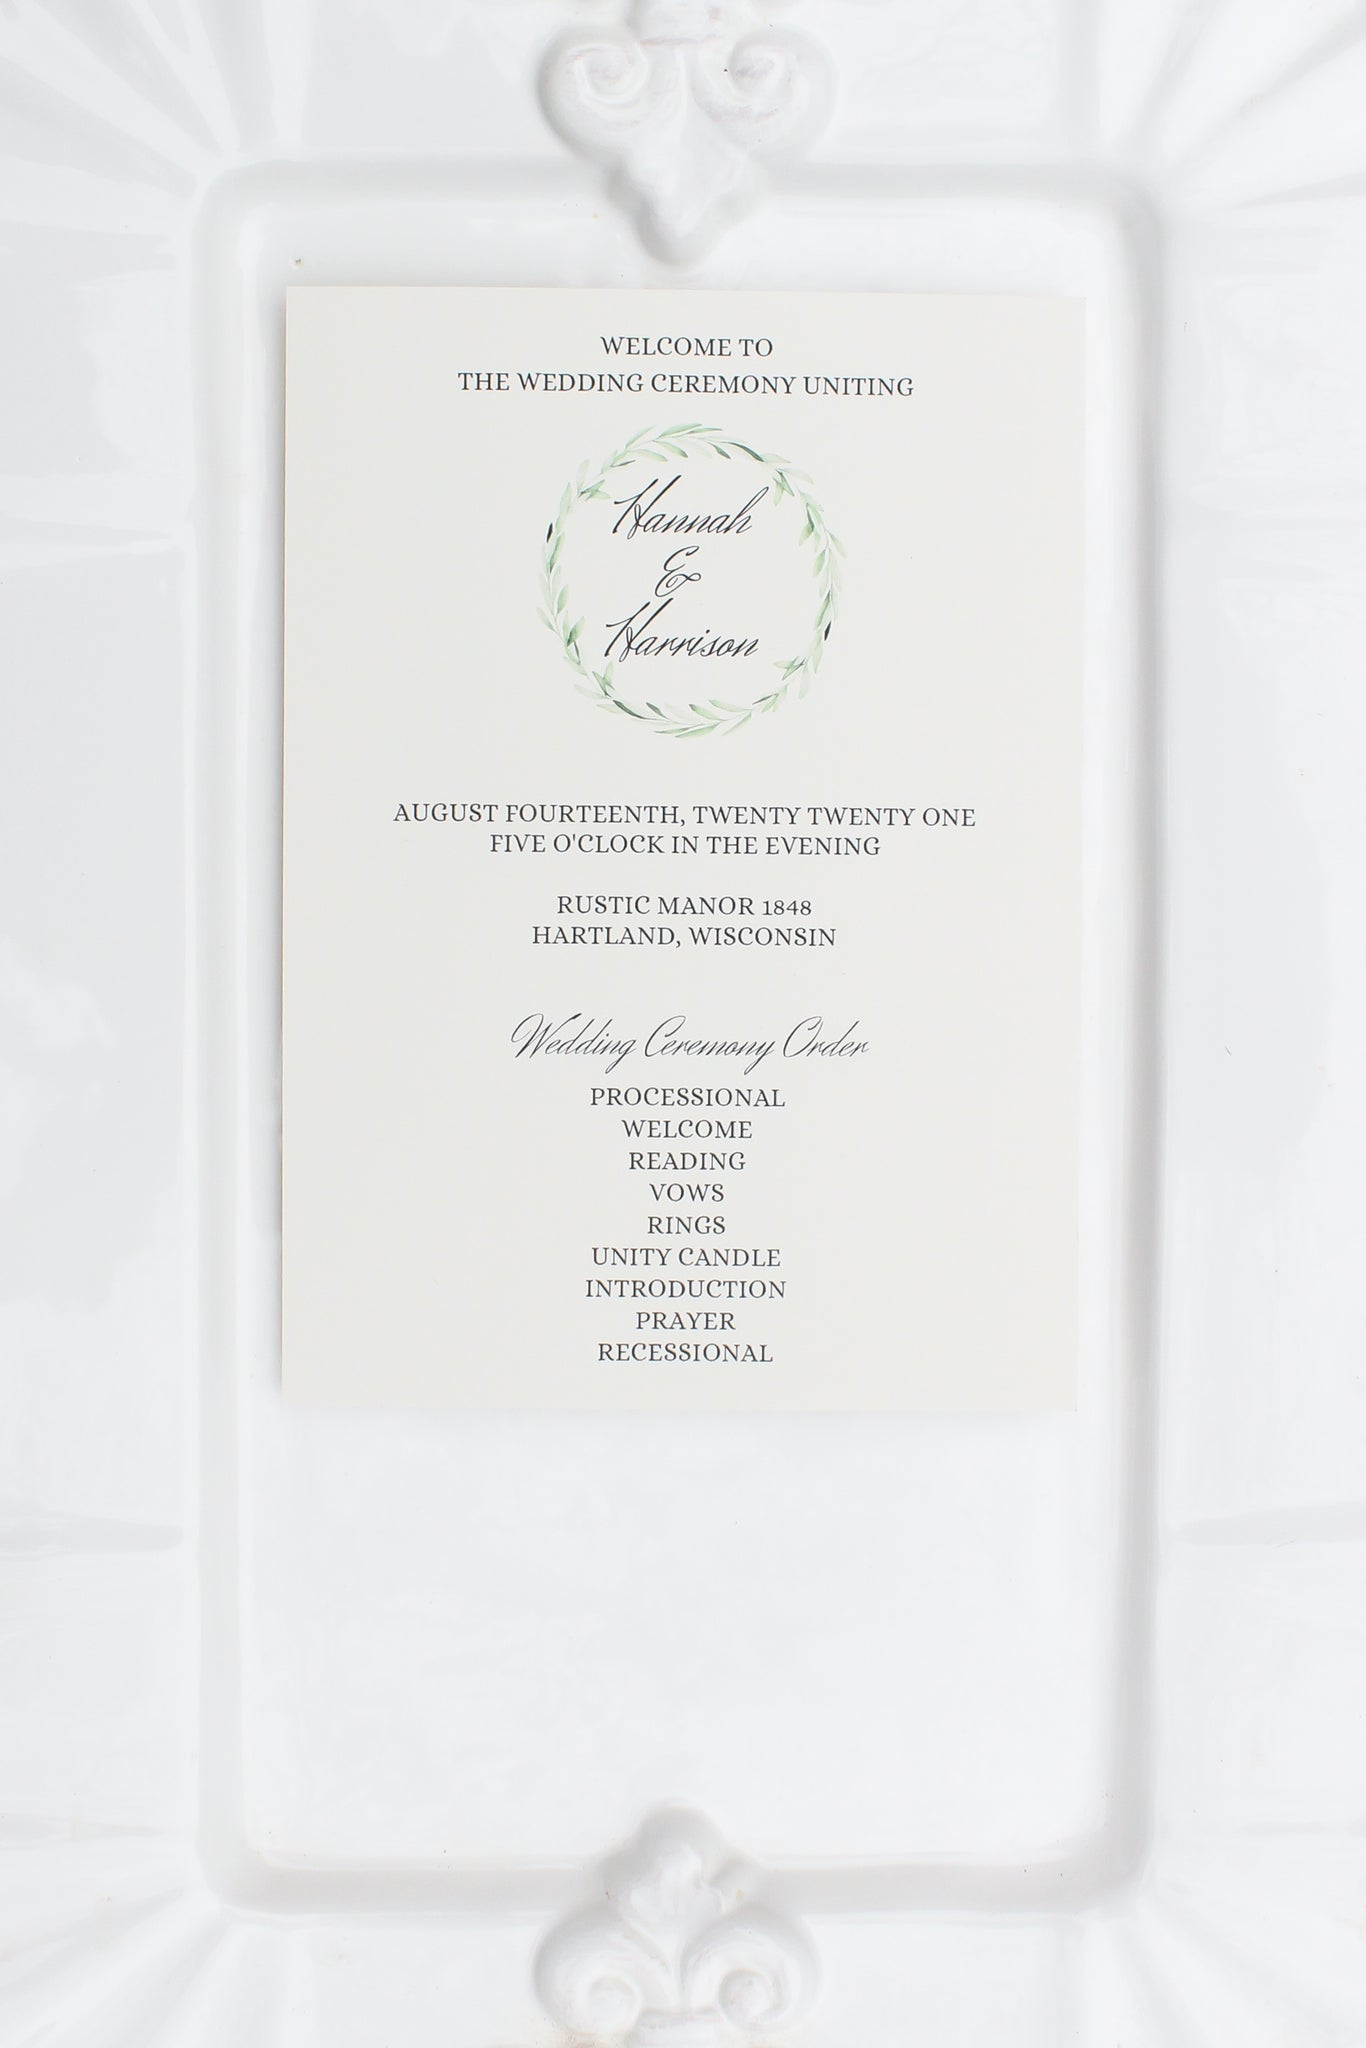 wedding programs sustainably printed on 100% recycled paper